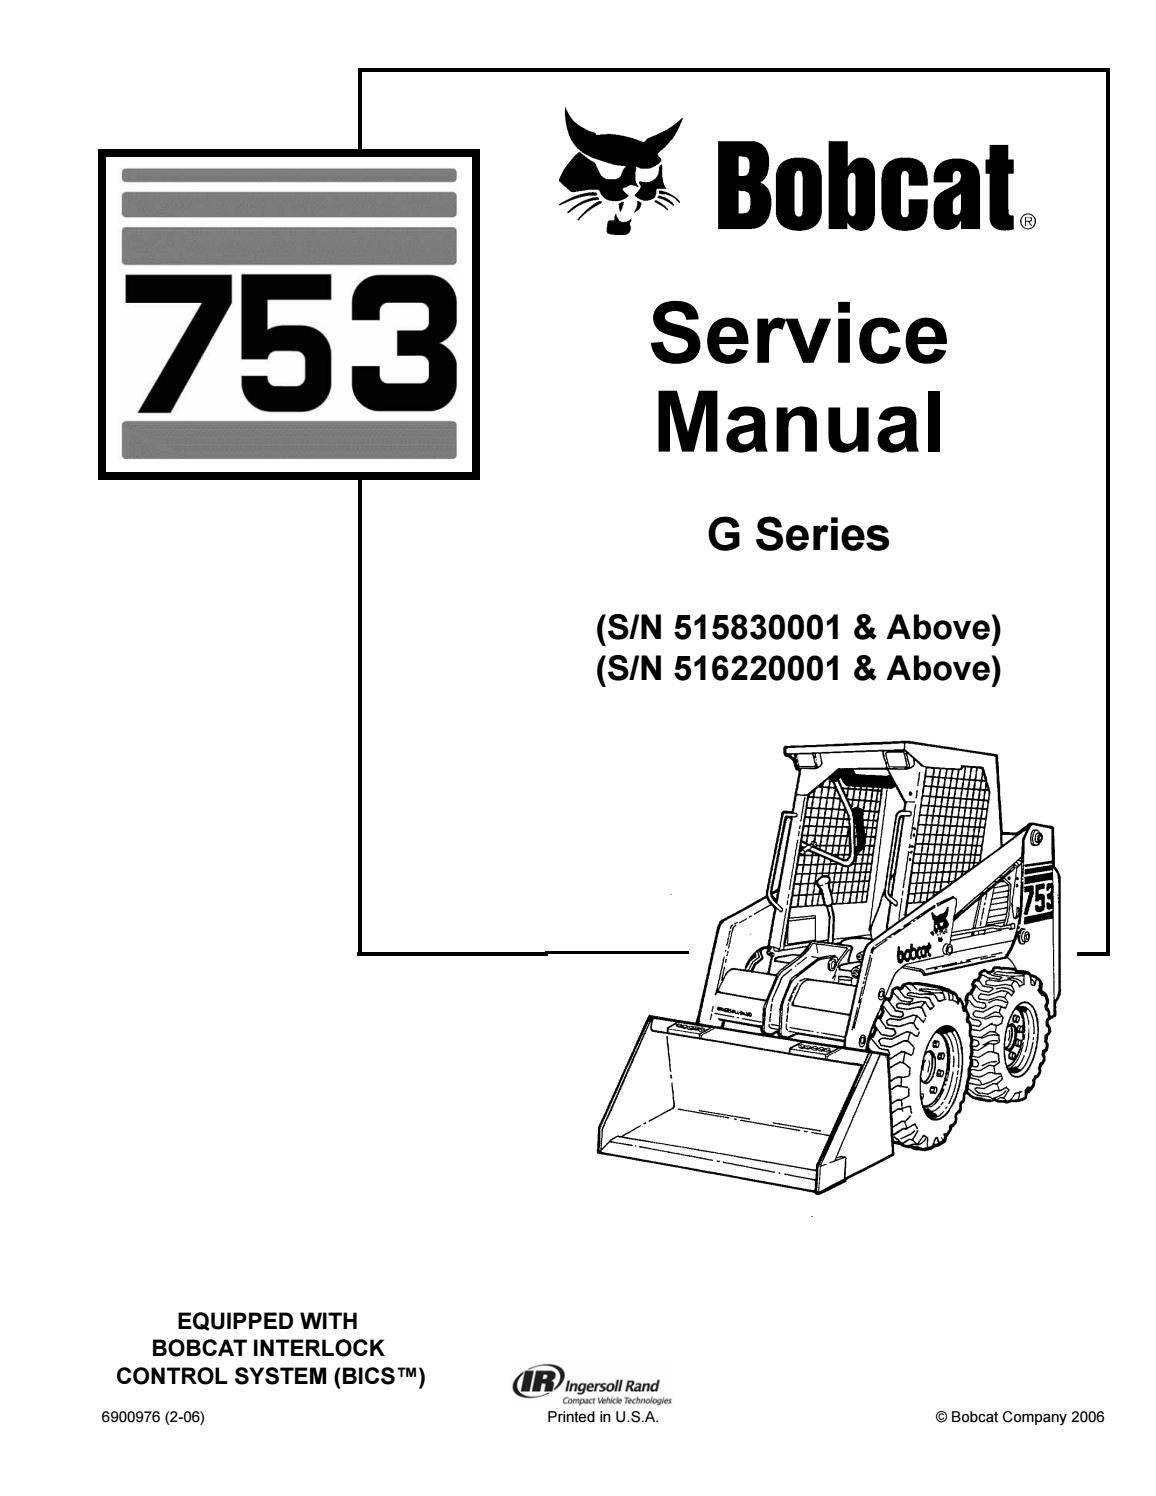 hight resolution of bobcat 753 skid steer loader service repair manual sn 515830001 above sn 516220001 above by 163610 issuu